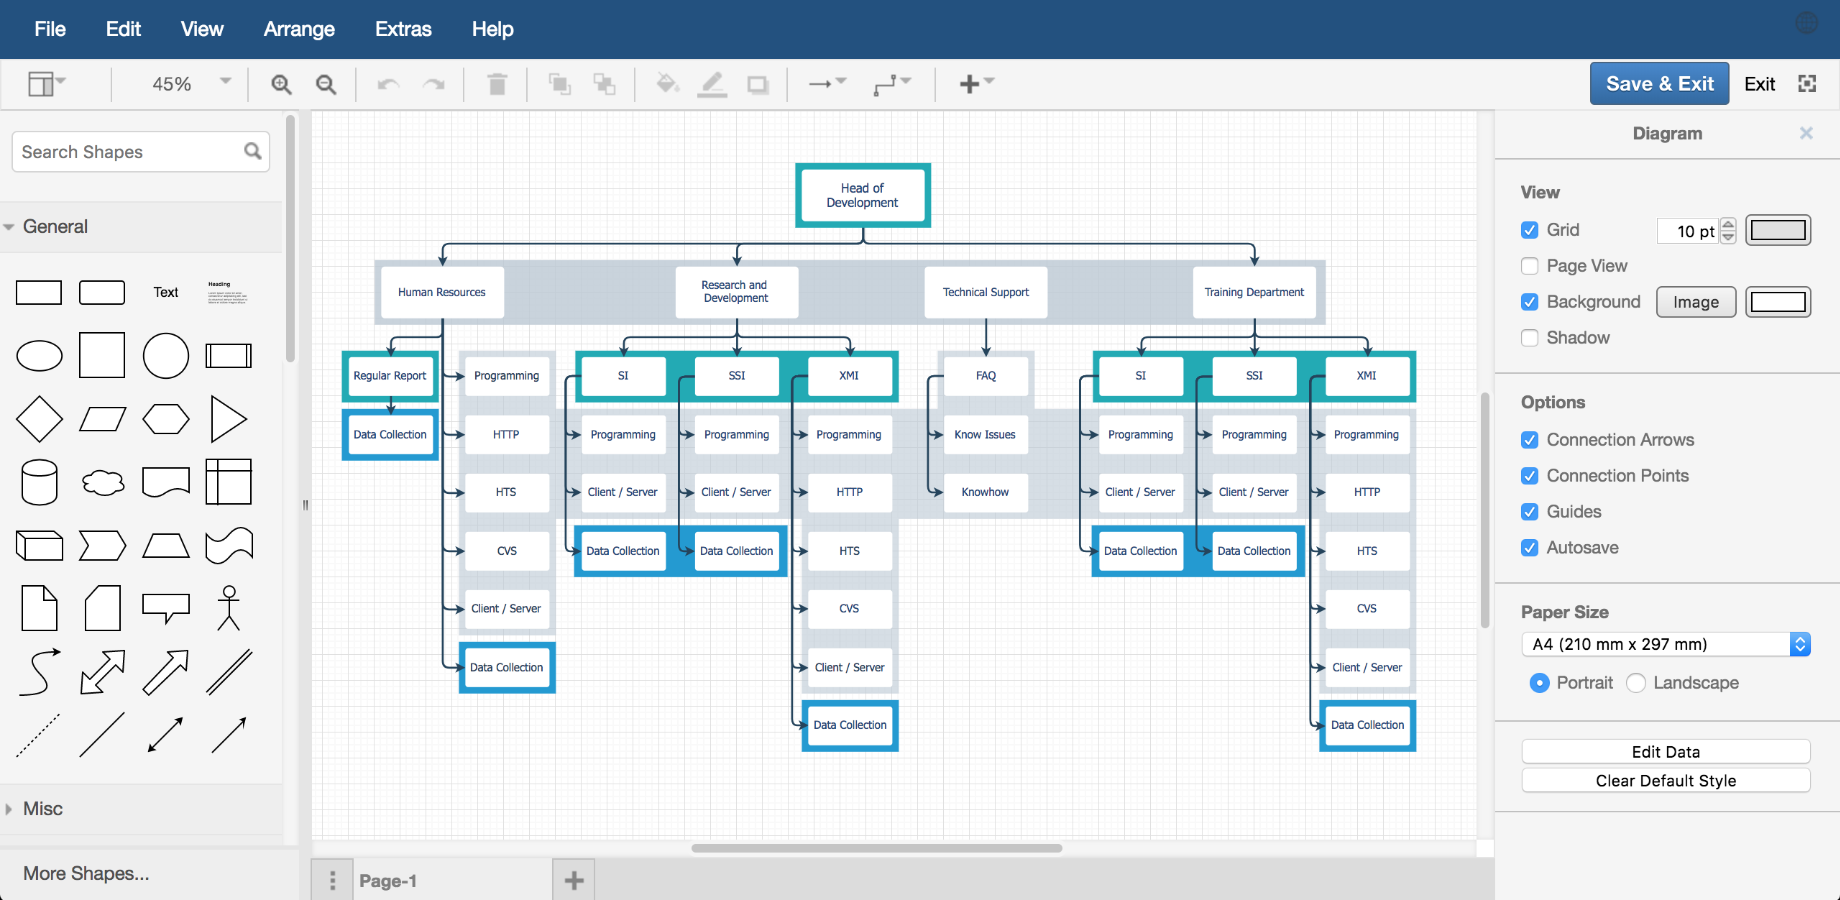 Examples Drawio Into How The Diagram In Link Maps To A Circuit Like This Org Chart